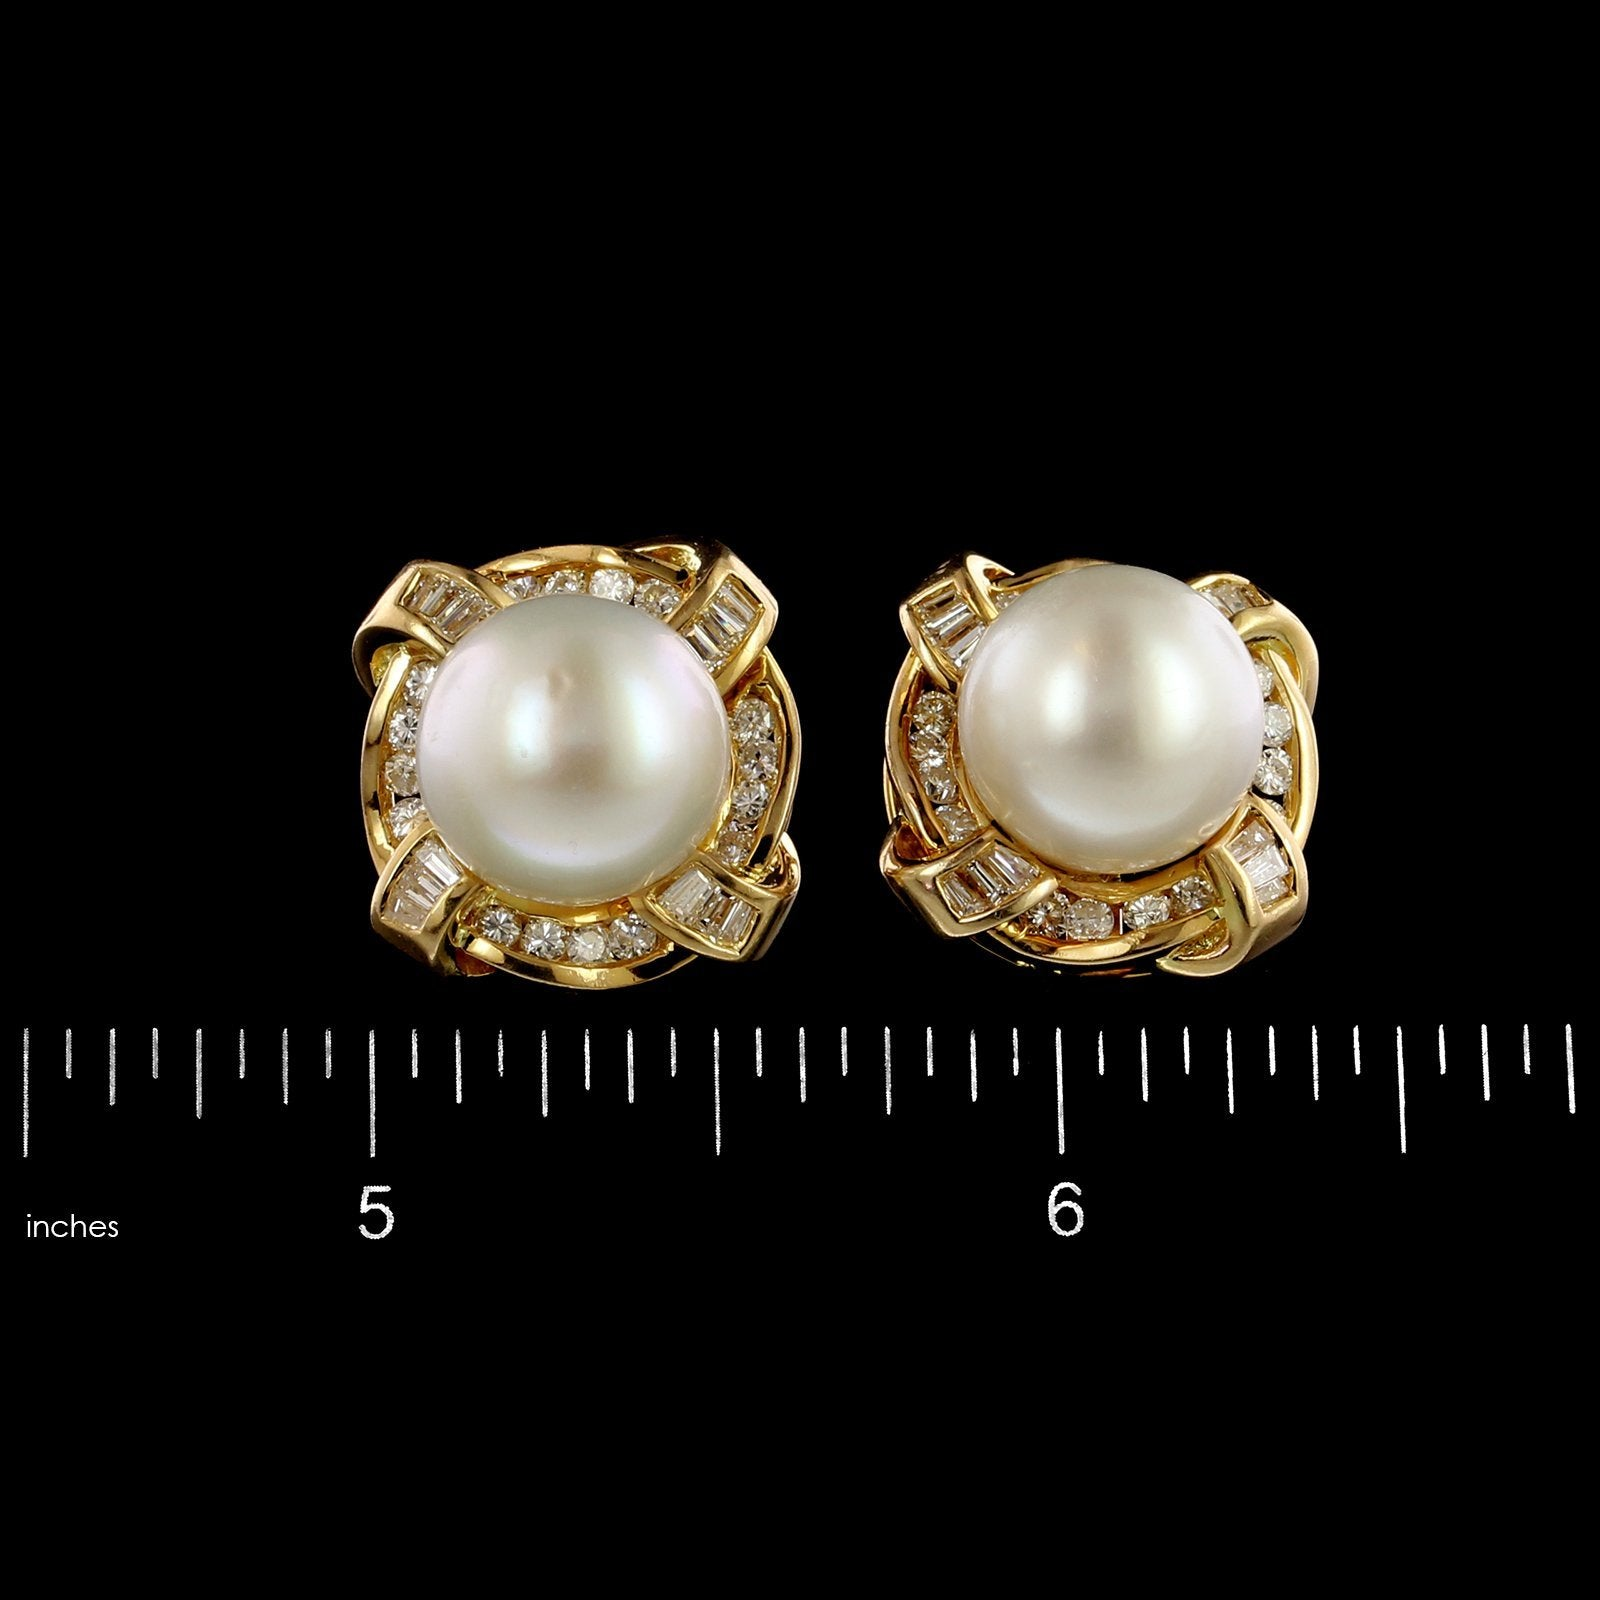 18K Yellow Gold Estate Cultured South Sea Pearl and Diamond Earrings